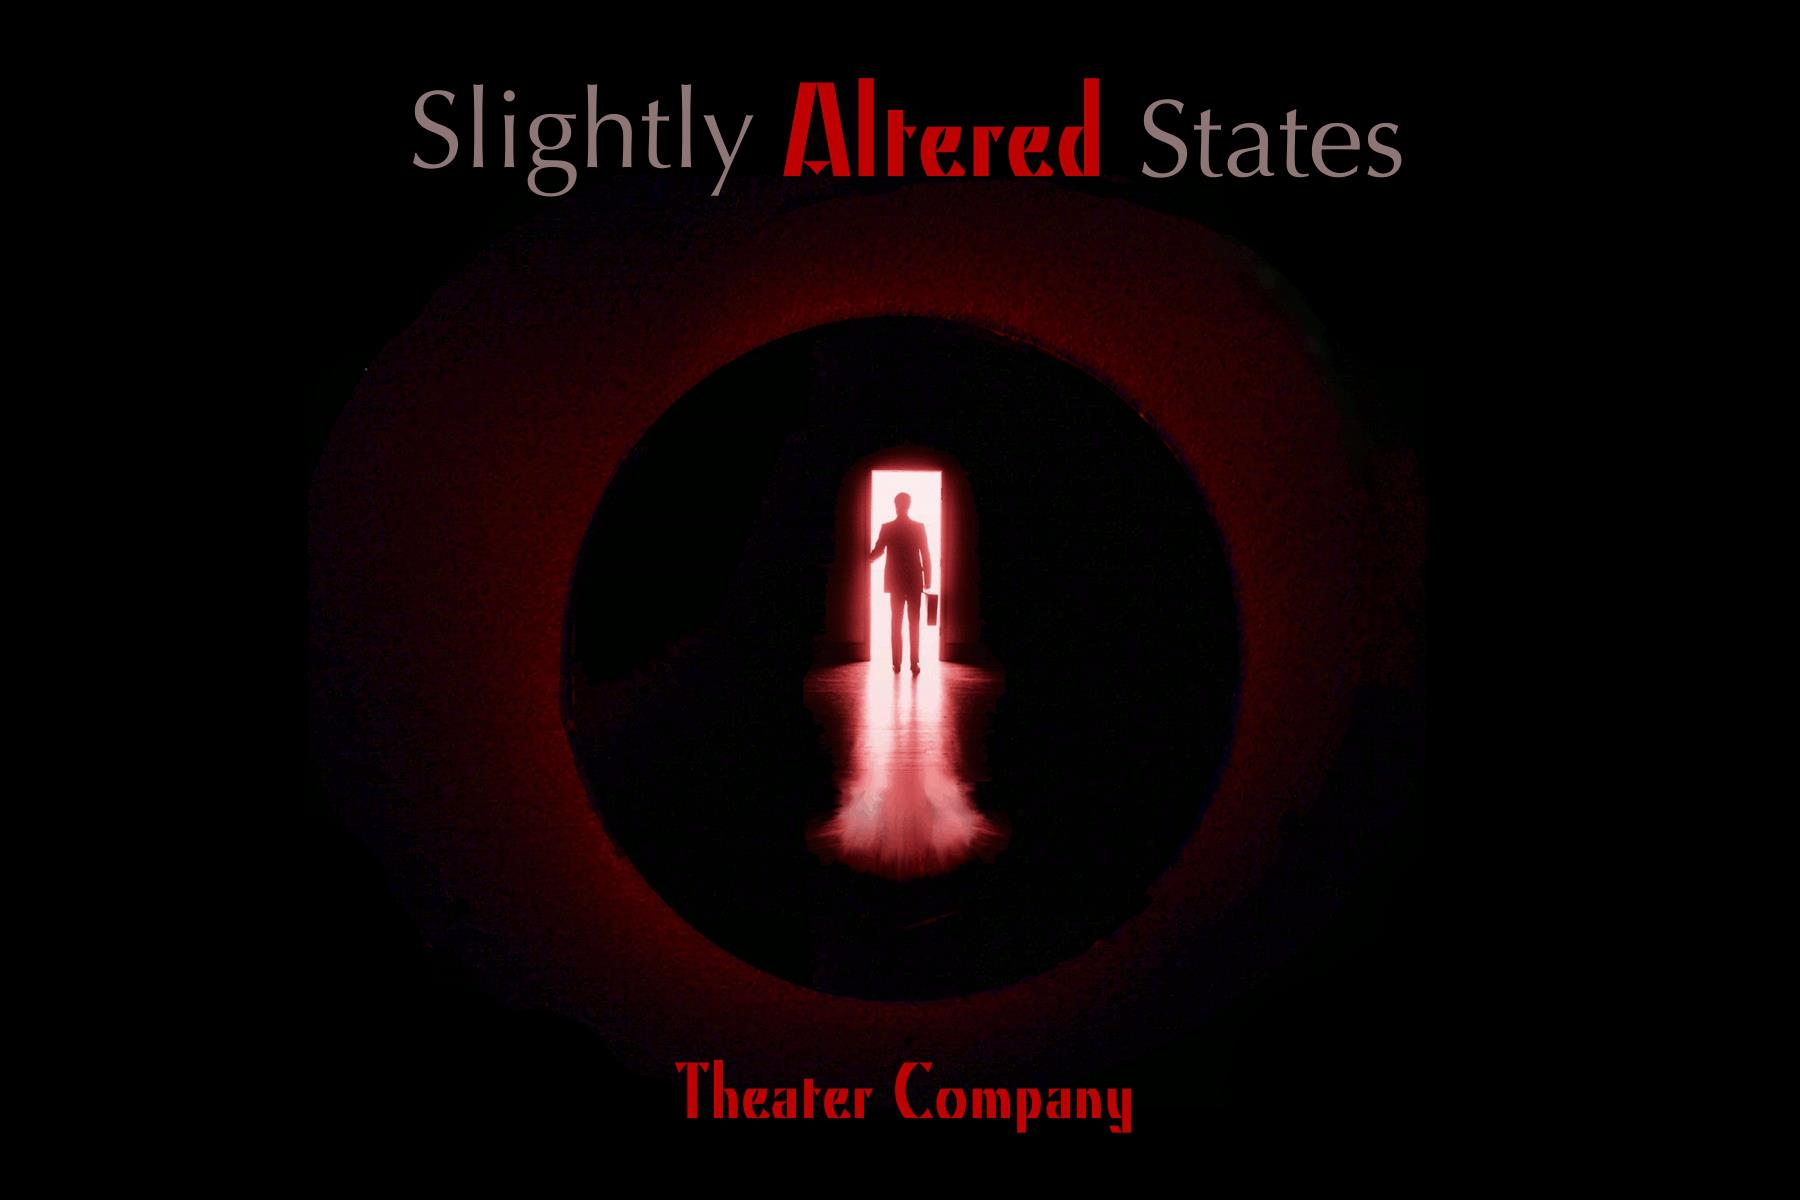 slightly-altered-states